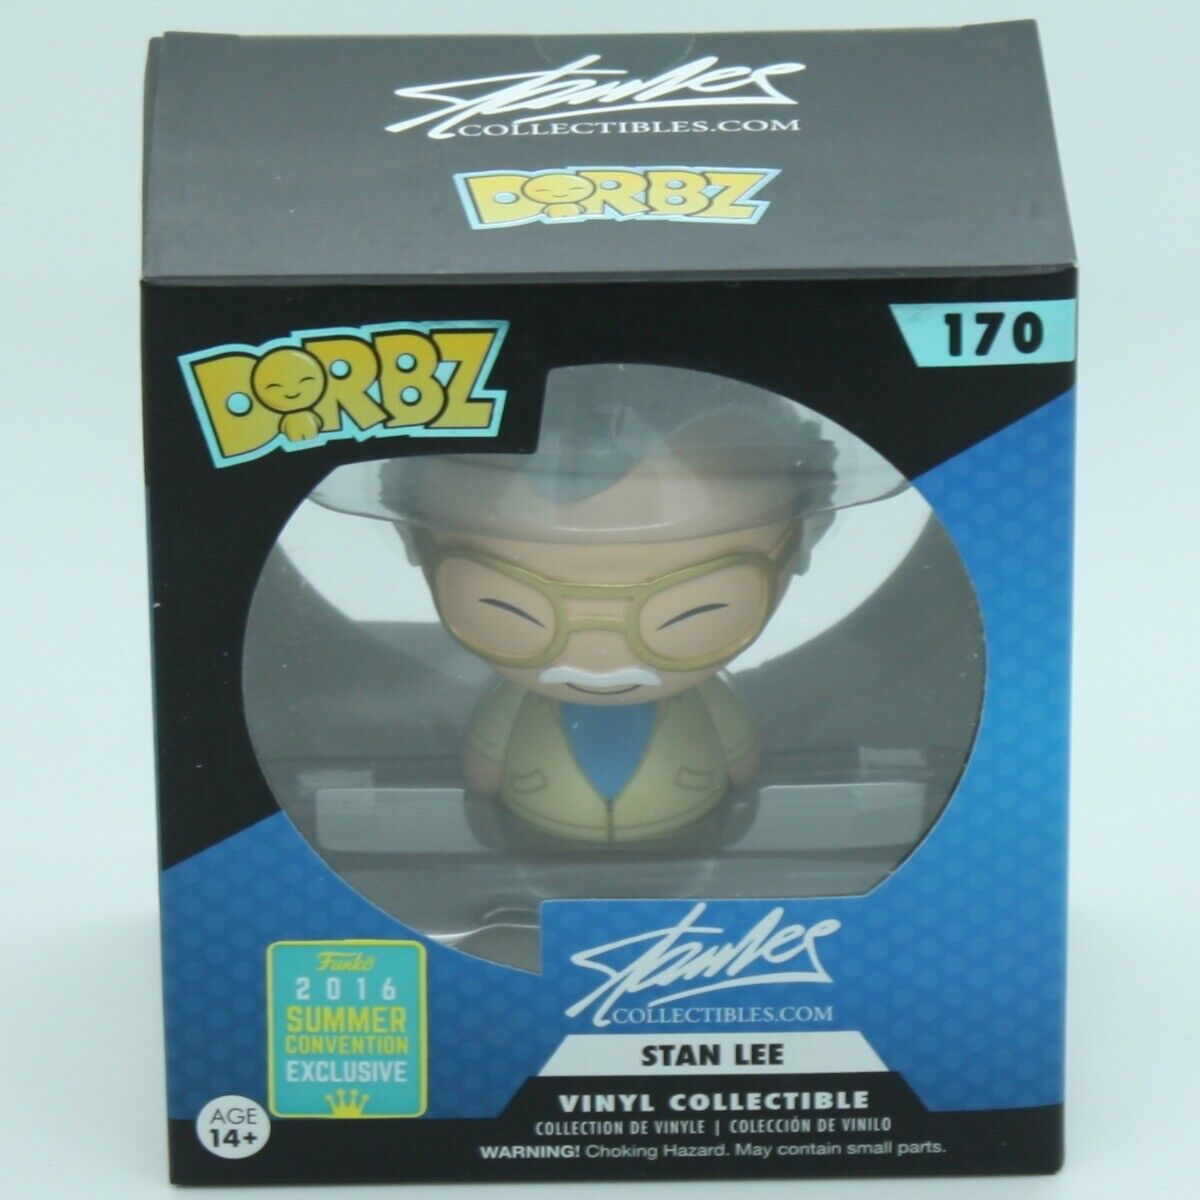 Diverdeimentoko Dorbz 170 Stan Lee Collectibles 9482 Stan Lee  SDCC2016  profitto zero